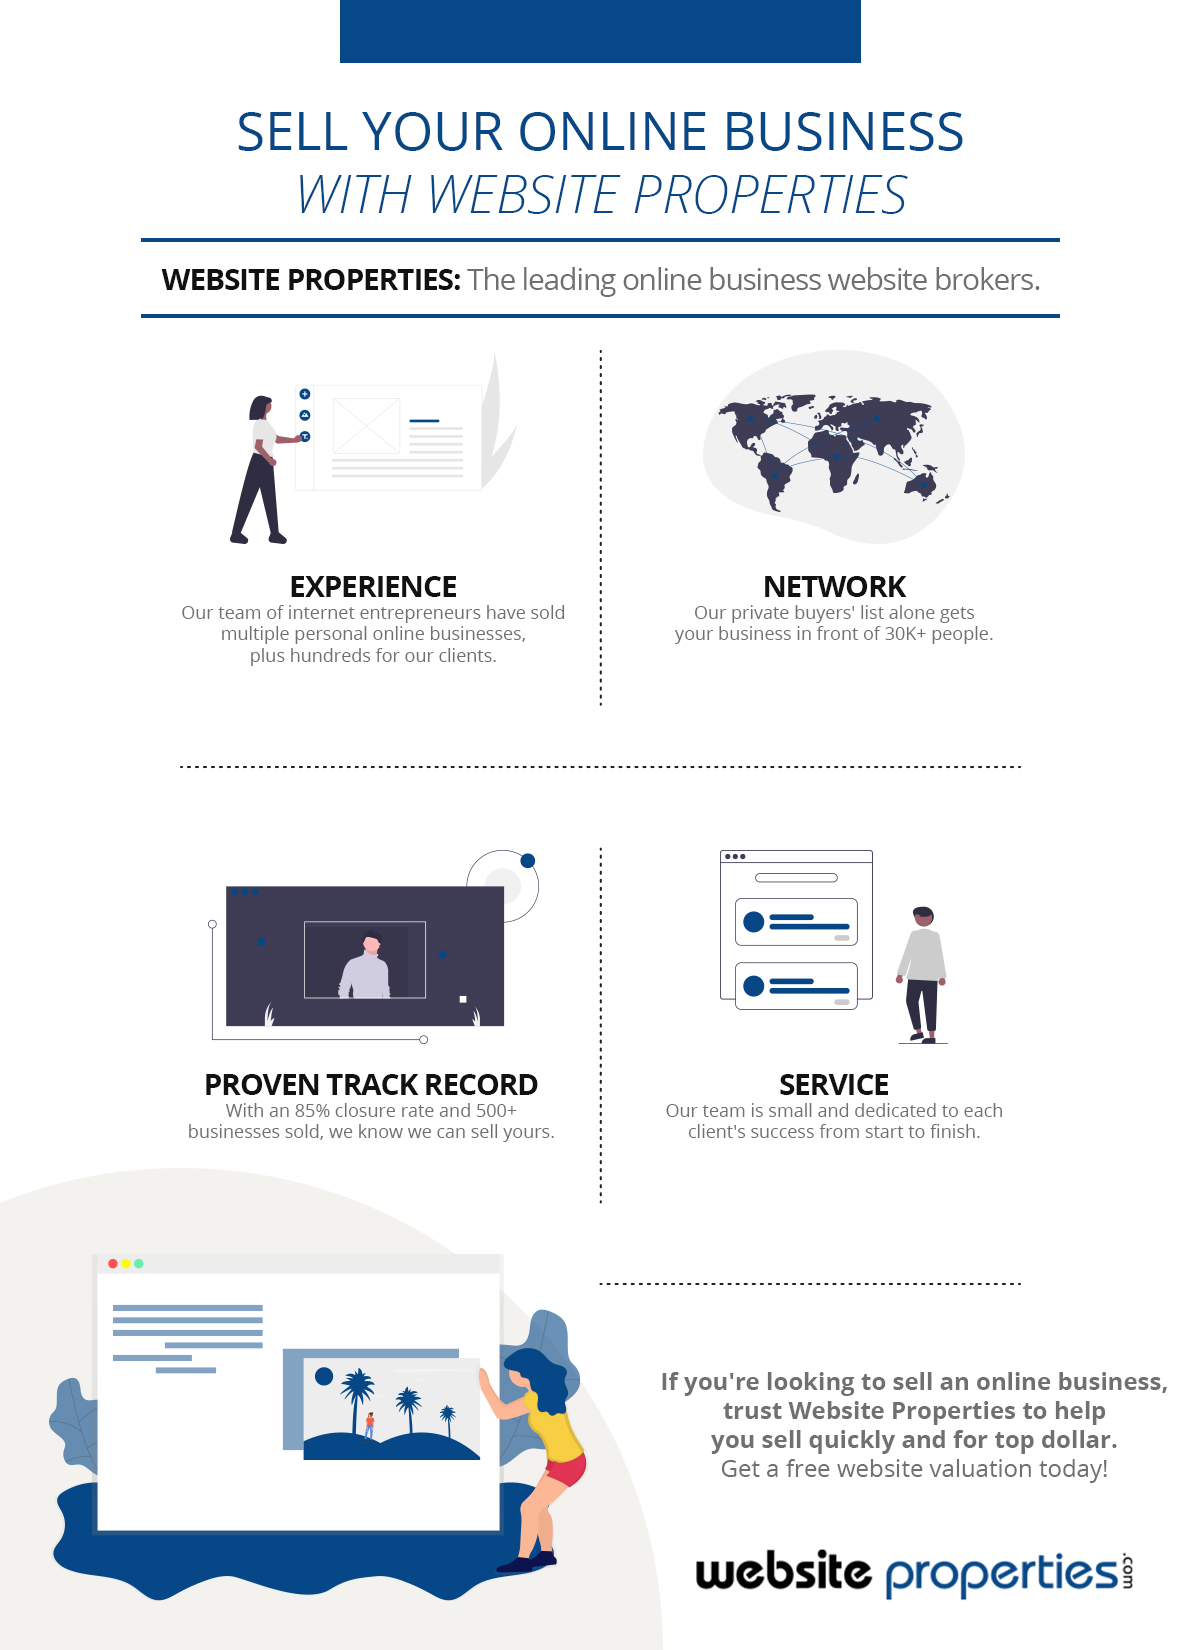 Sell Your Online Business With Website Properties.